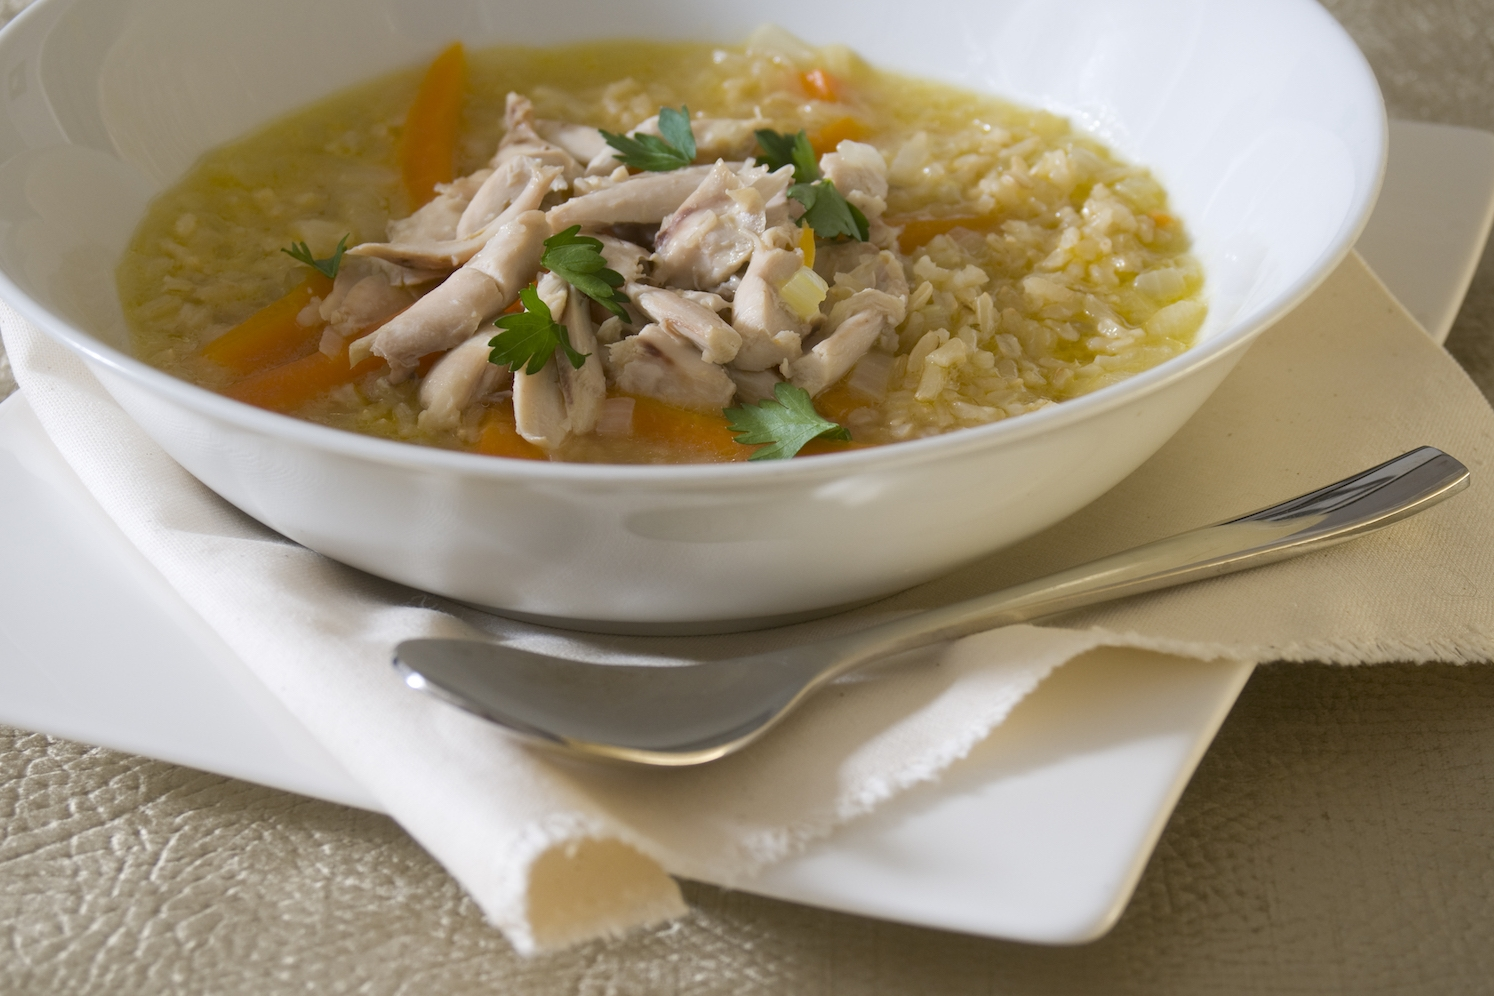 deliciously-light chicken and/or lentil broth -